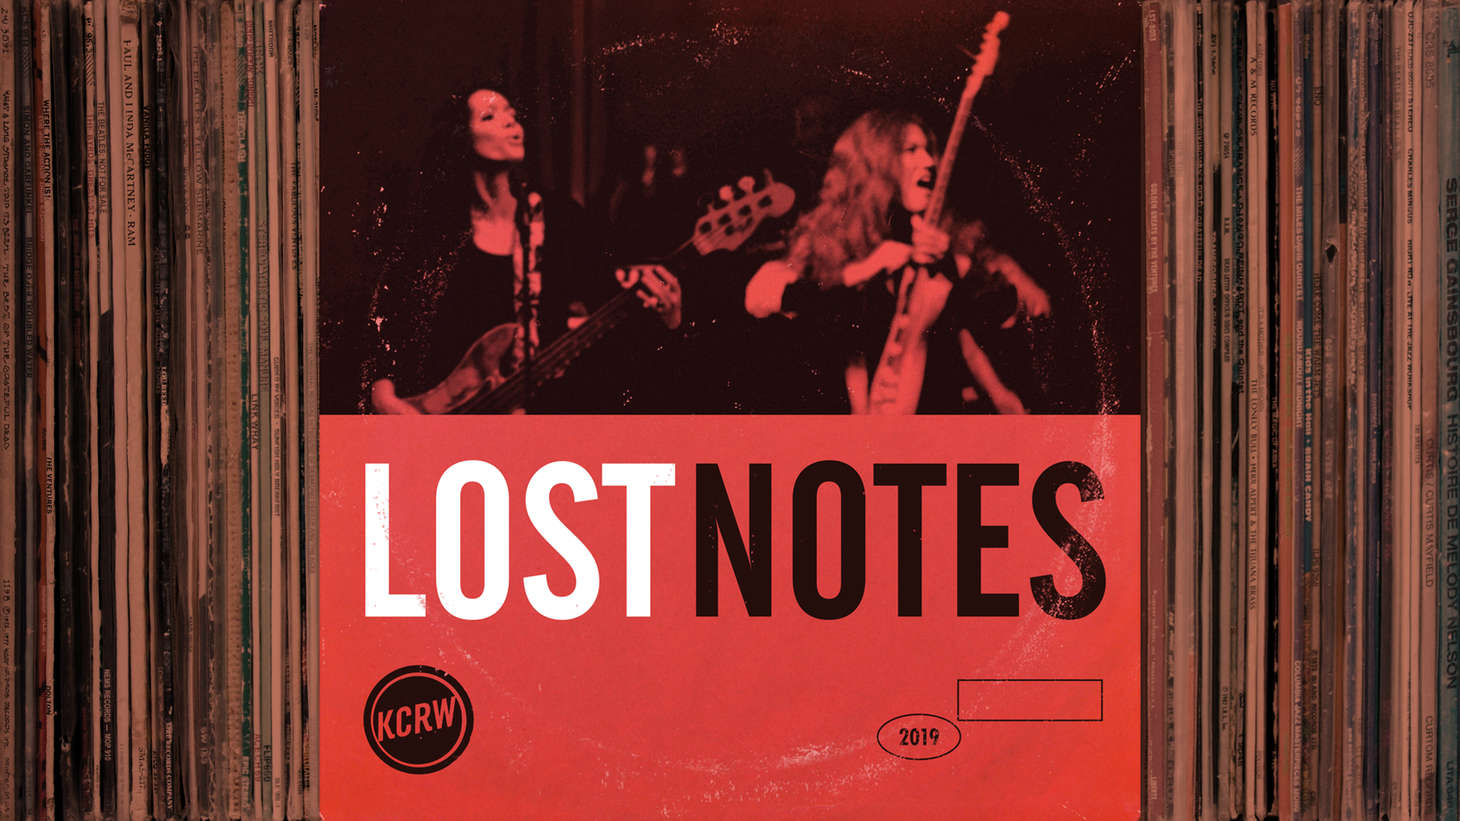 On this season of Lost Notes, the music journalist and author Jessica Hopper is looking at artist legacies. How do they hold up? How do they change over time?